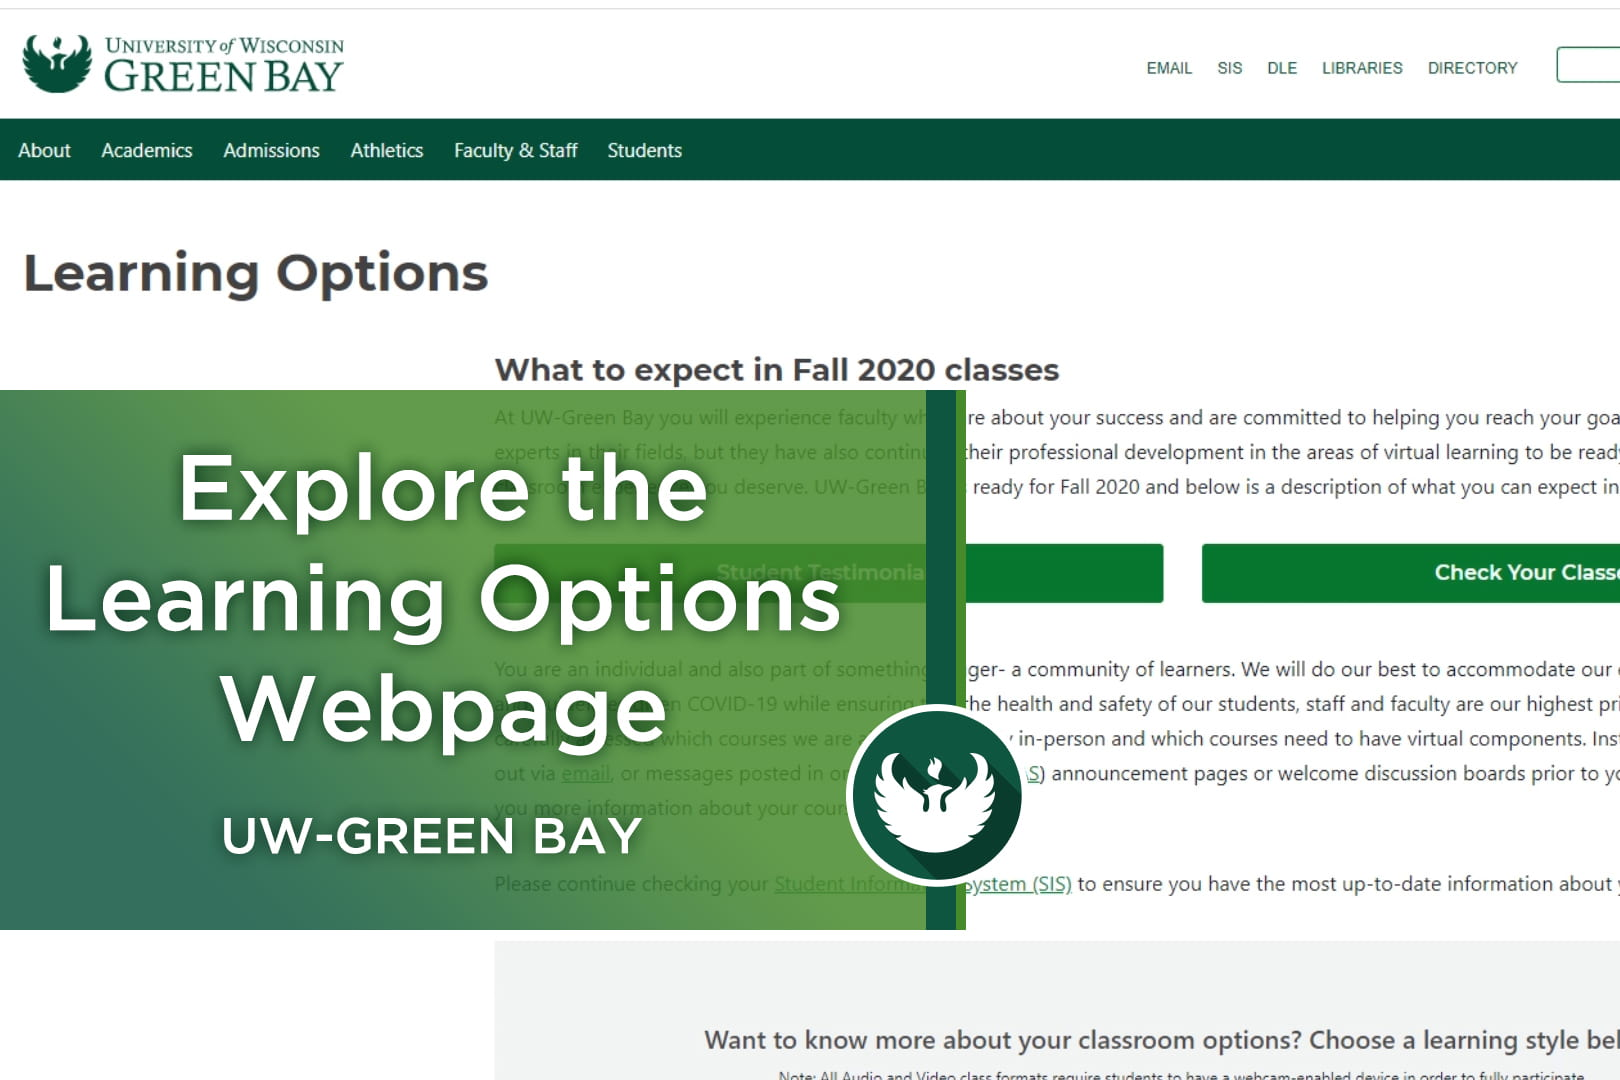 Photo of the UW-Green Bay Learning Options webpage.